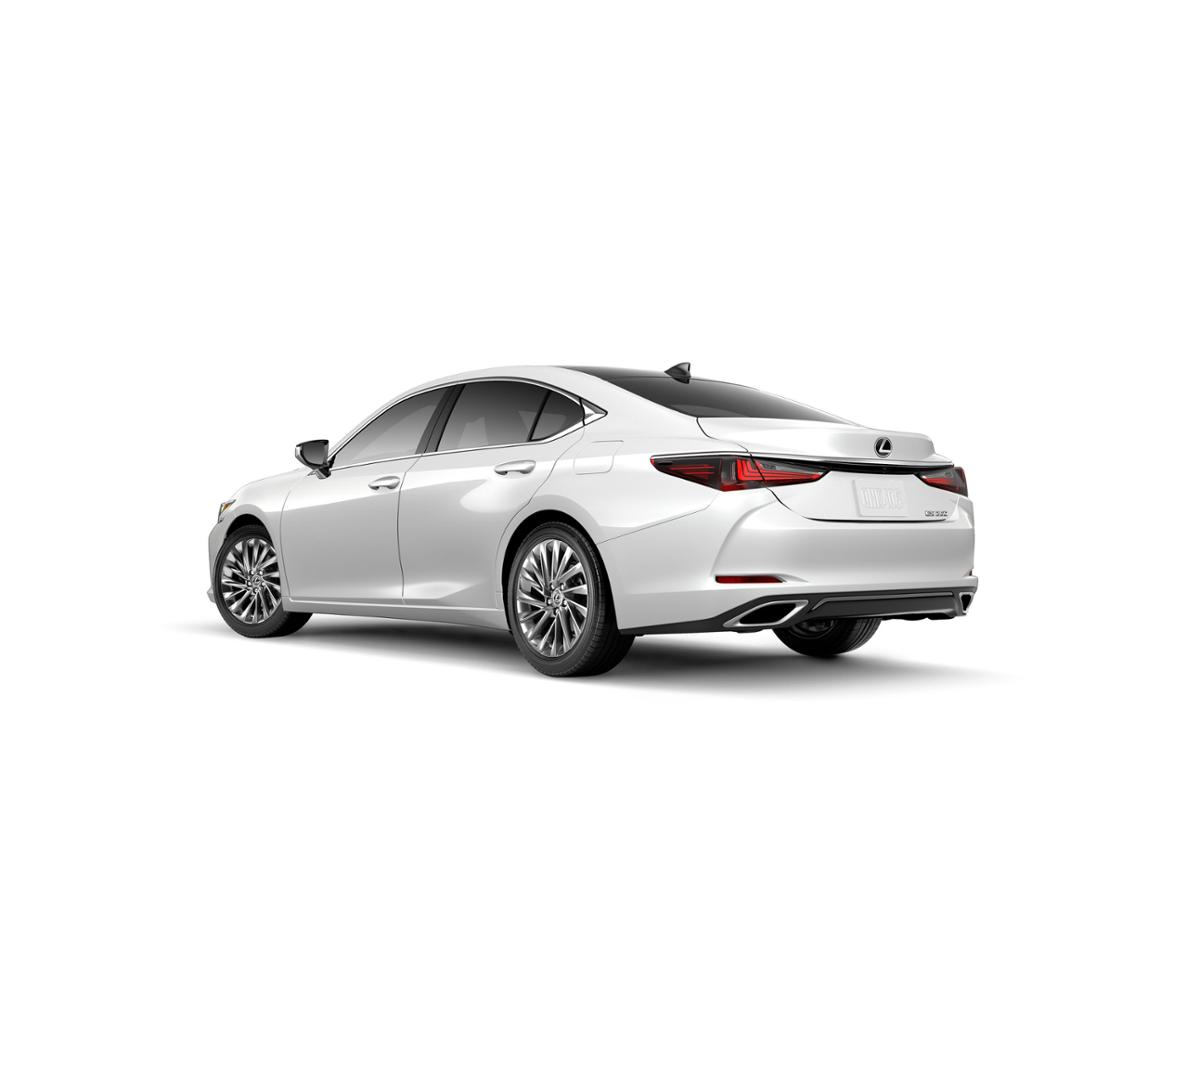 Lexus Es 350 For Sale: Freehold Eminent White Pearl 2019 Lexus ES 350 New For